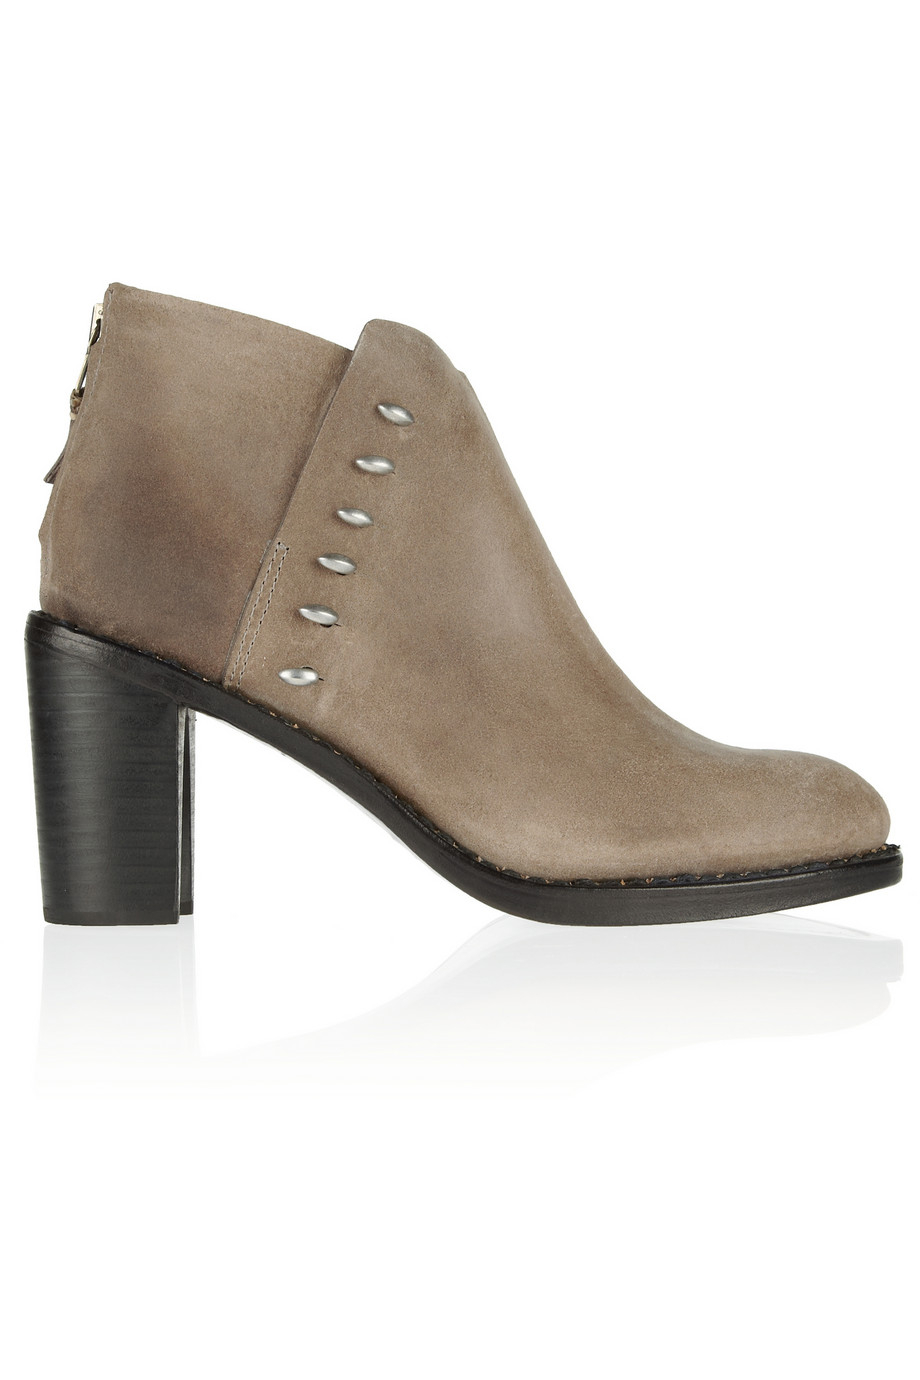 rag bone ayle waxed suede ankle boots in gray lyst. Black Bedroom Furniture Sets. Home Design Ideas